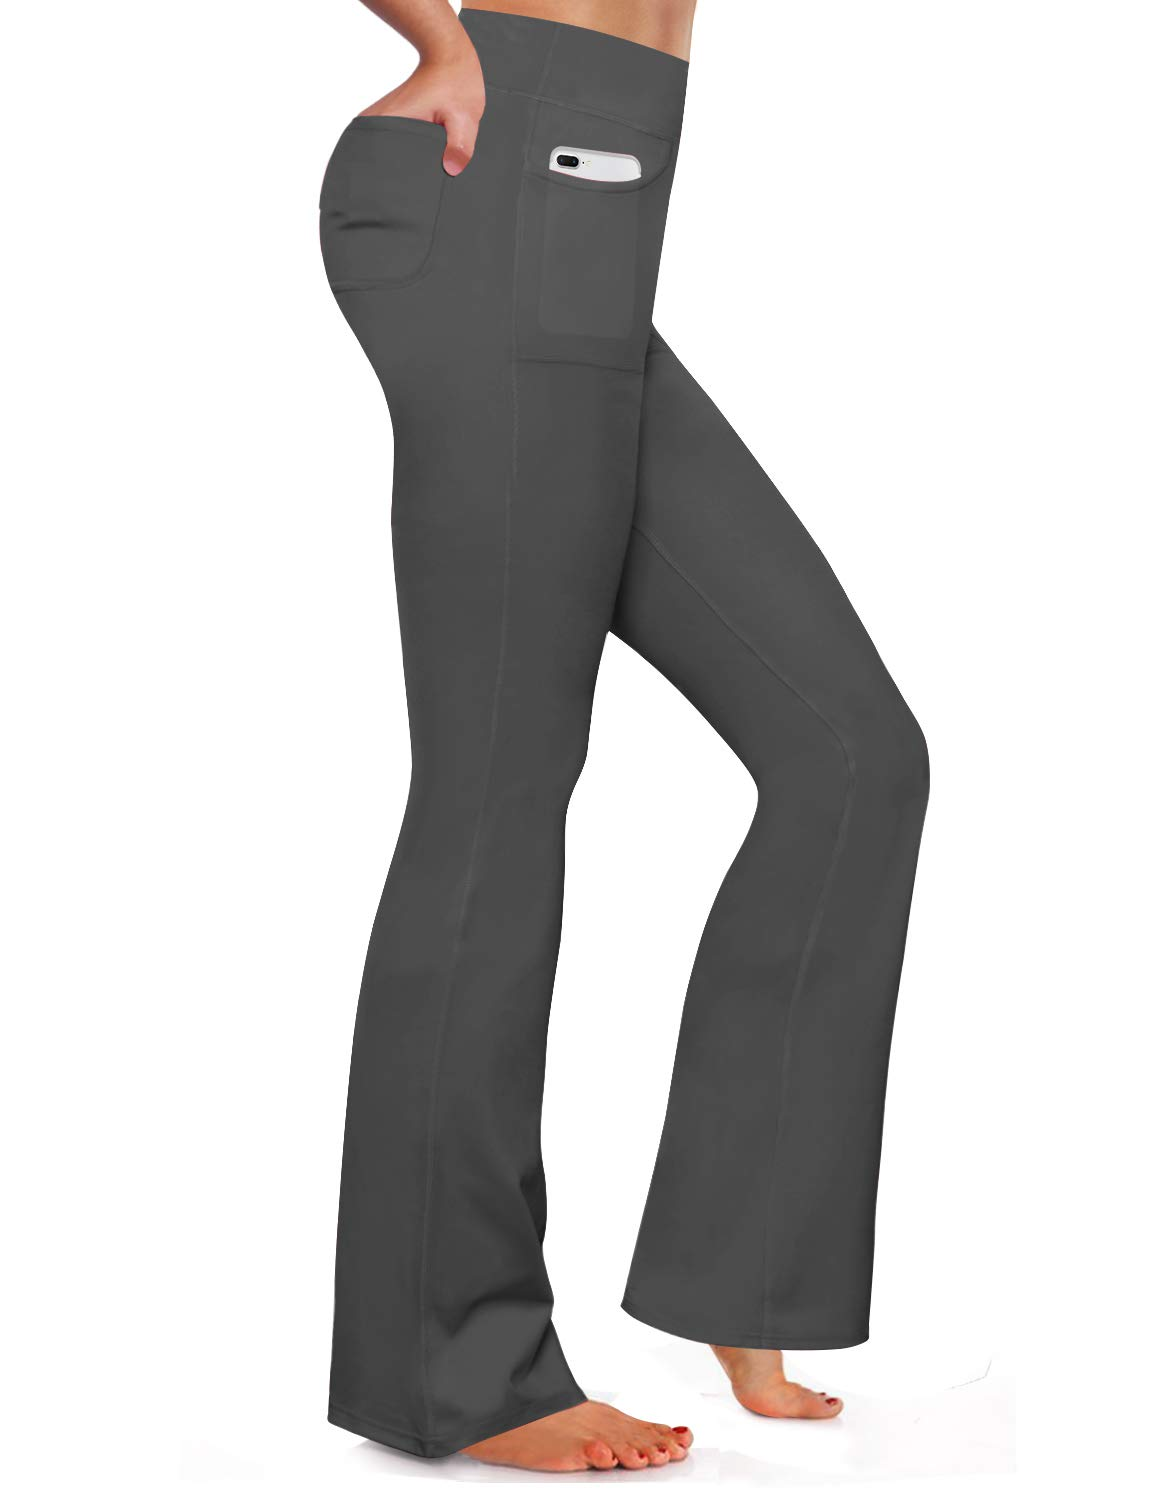 a76cf9c2d2fe Best Rated in Women's Running Pants & Helpful Customer Reviews ...